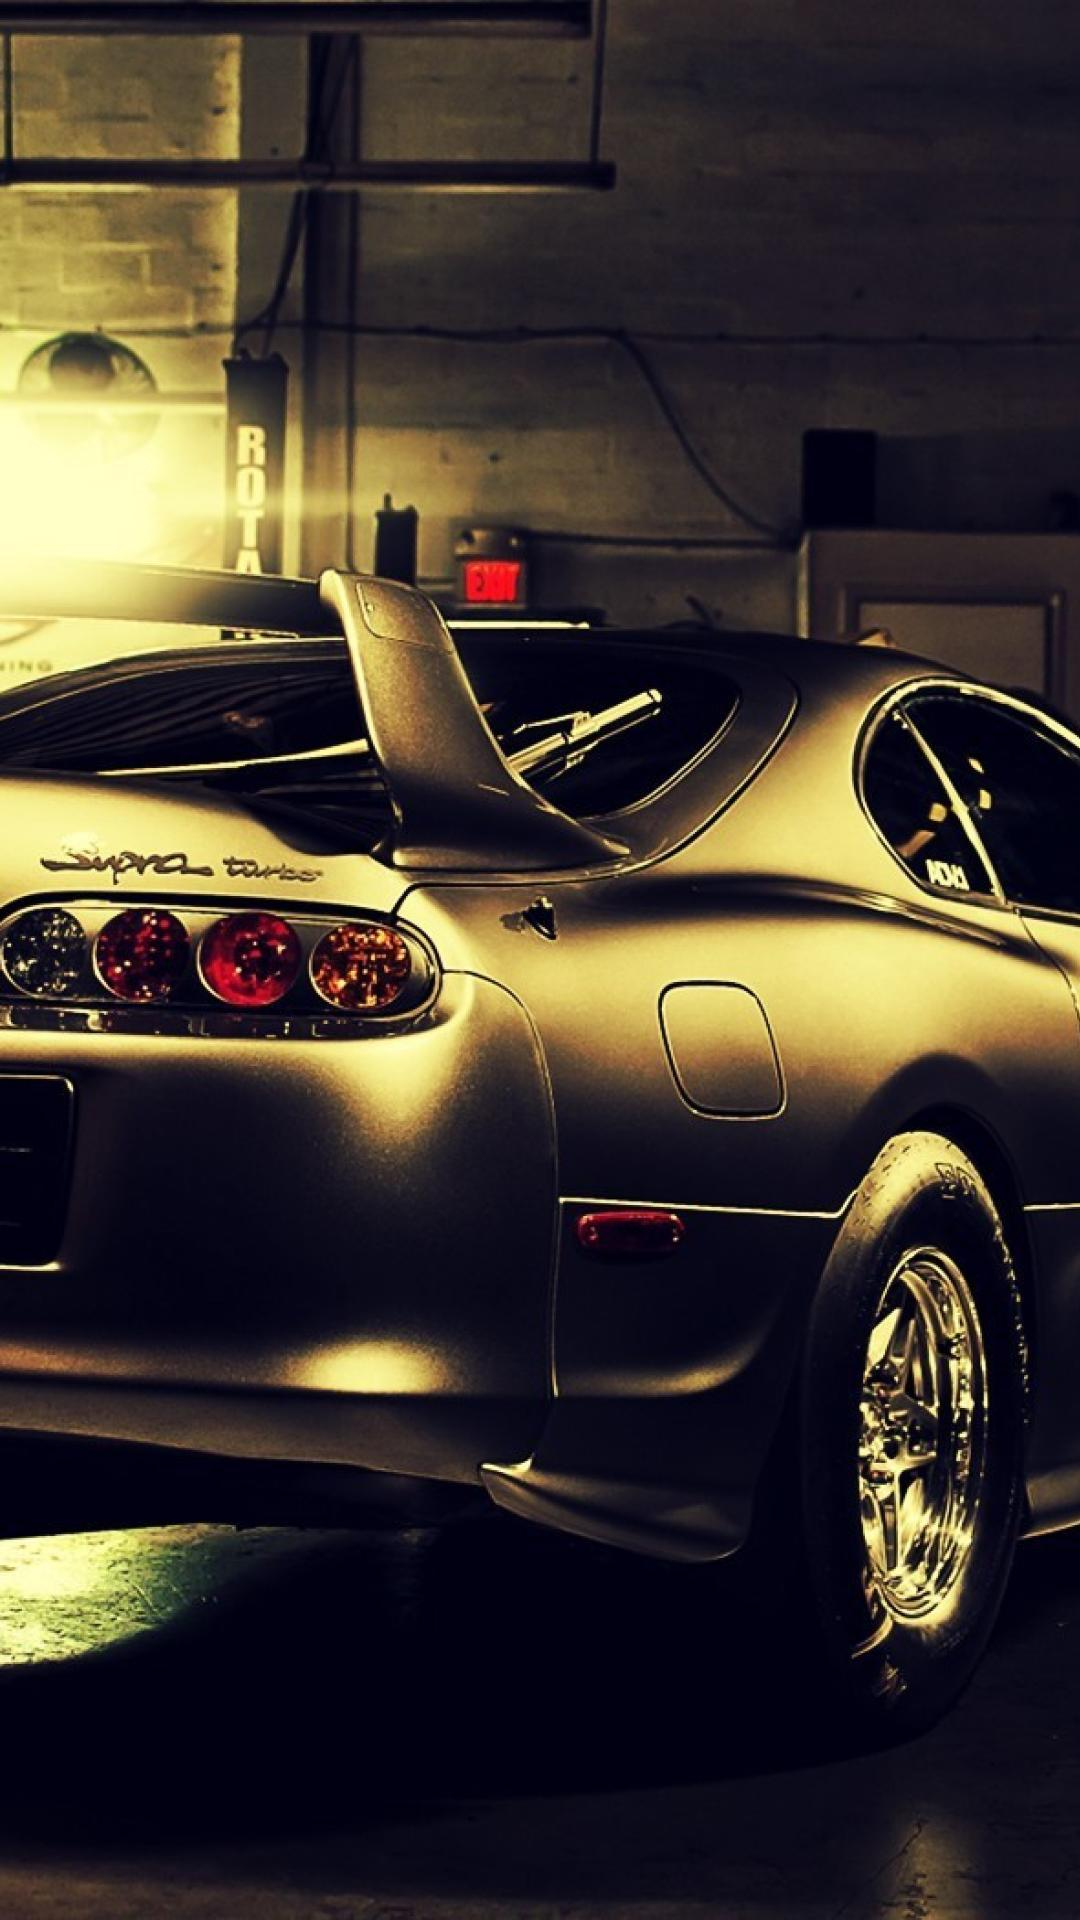 Toyota Supra Tuning Wallpapers Handy Wallpaper Cave